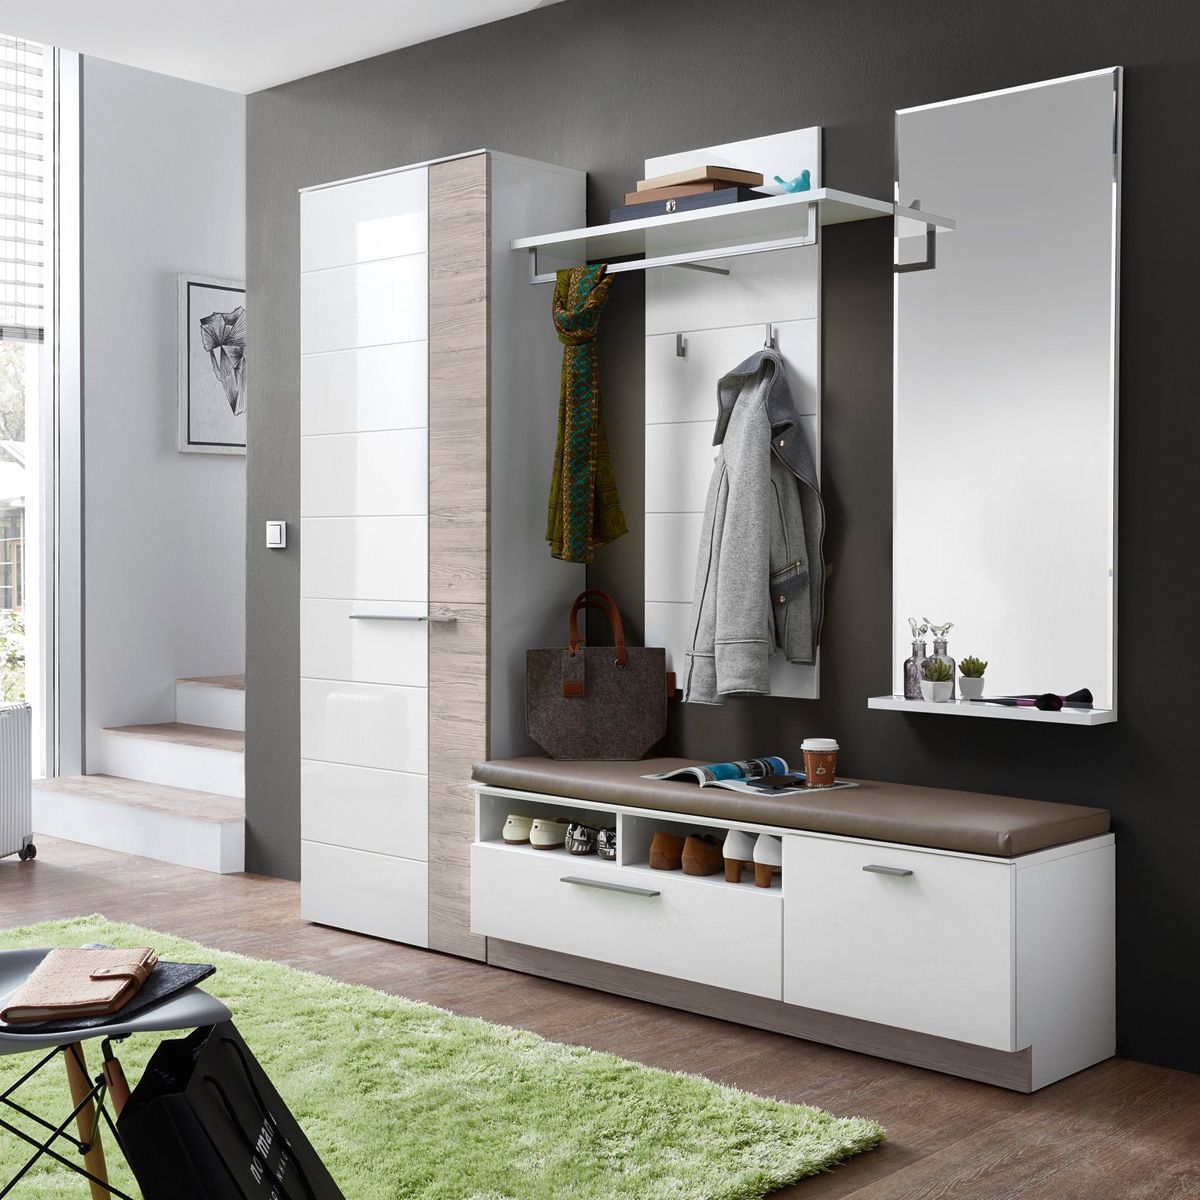 garderobenset 2 duo garderobe flurm bel in wei hochglanz. Black Bedroom Furniture Sets. Home Design Ideas